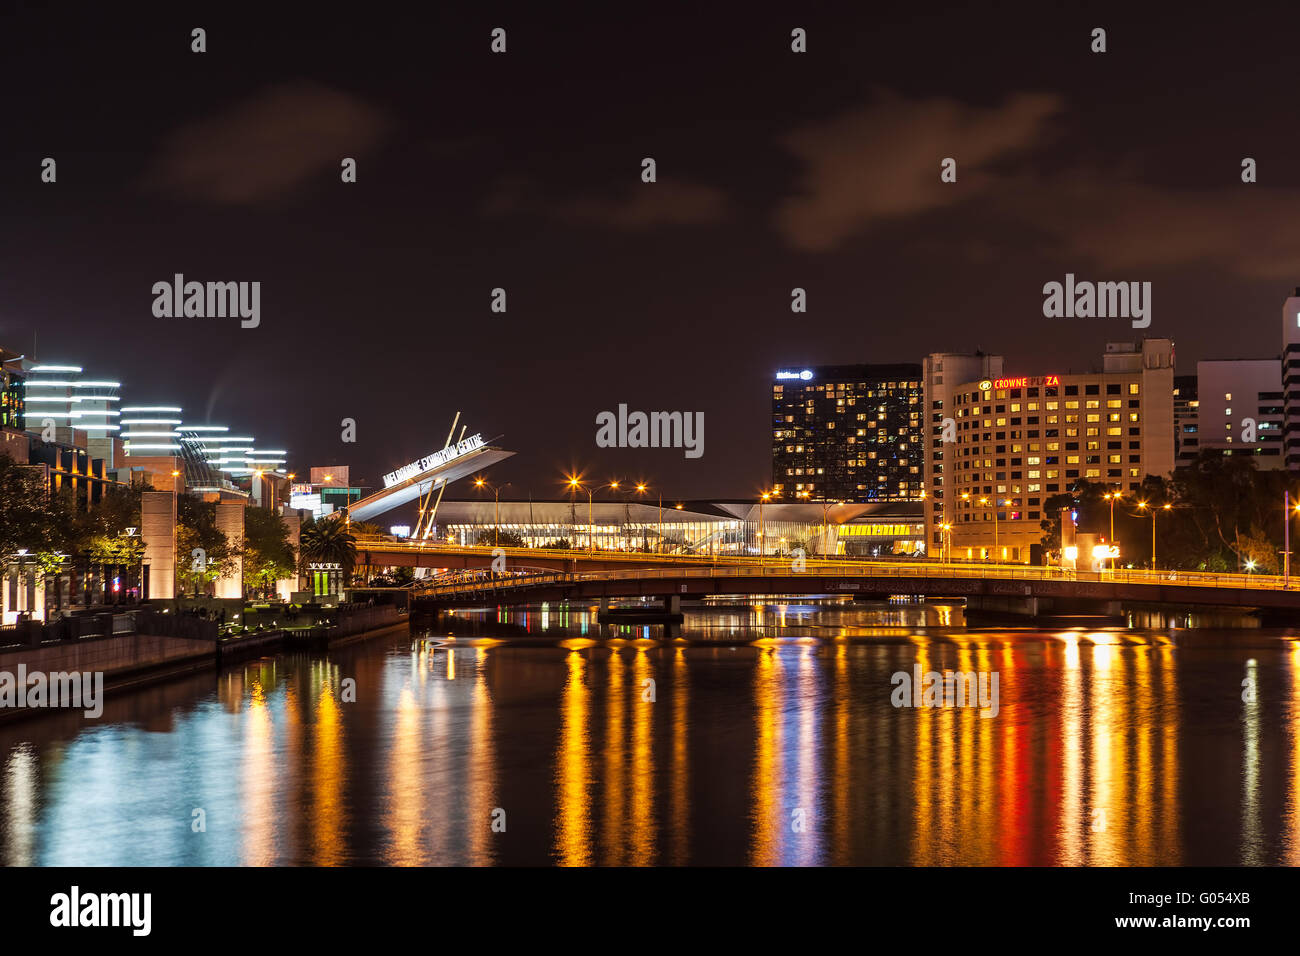 Melbourne CBD - APR 16 2016: Nightscape with Melbourne Exibition Centre sign and light reflections in Yarra River - Stock Image